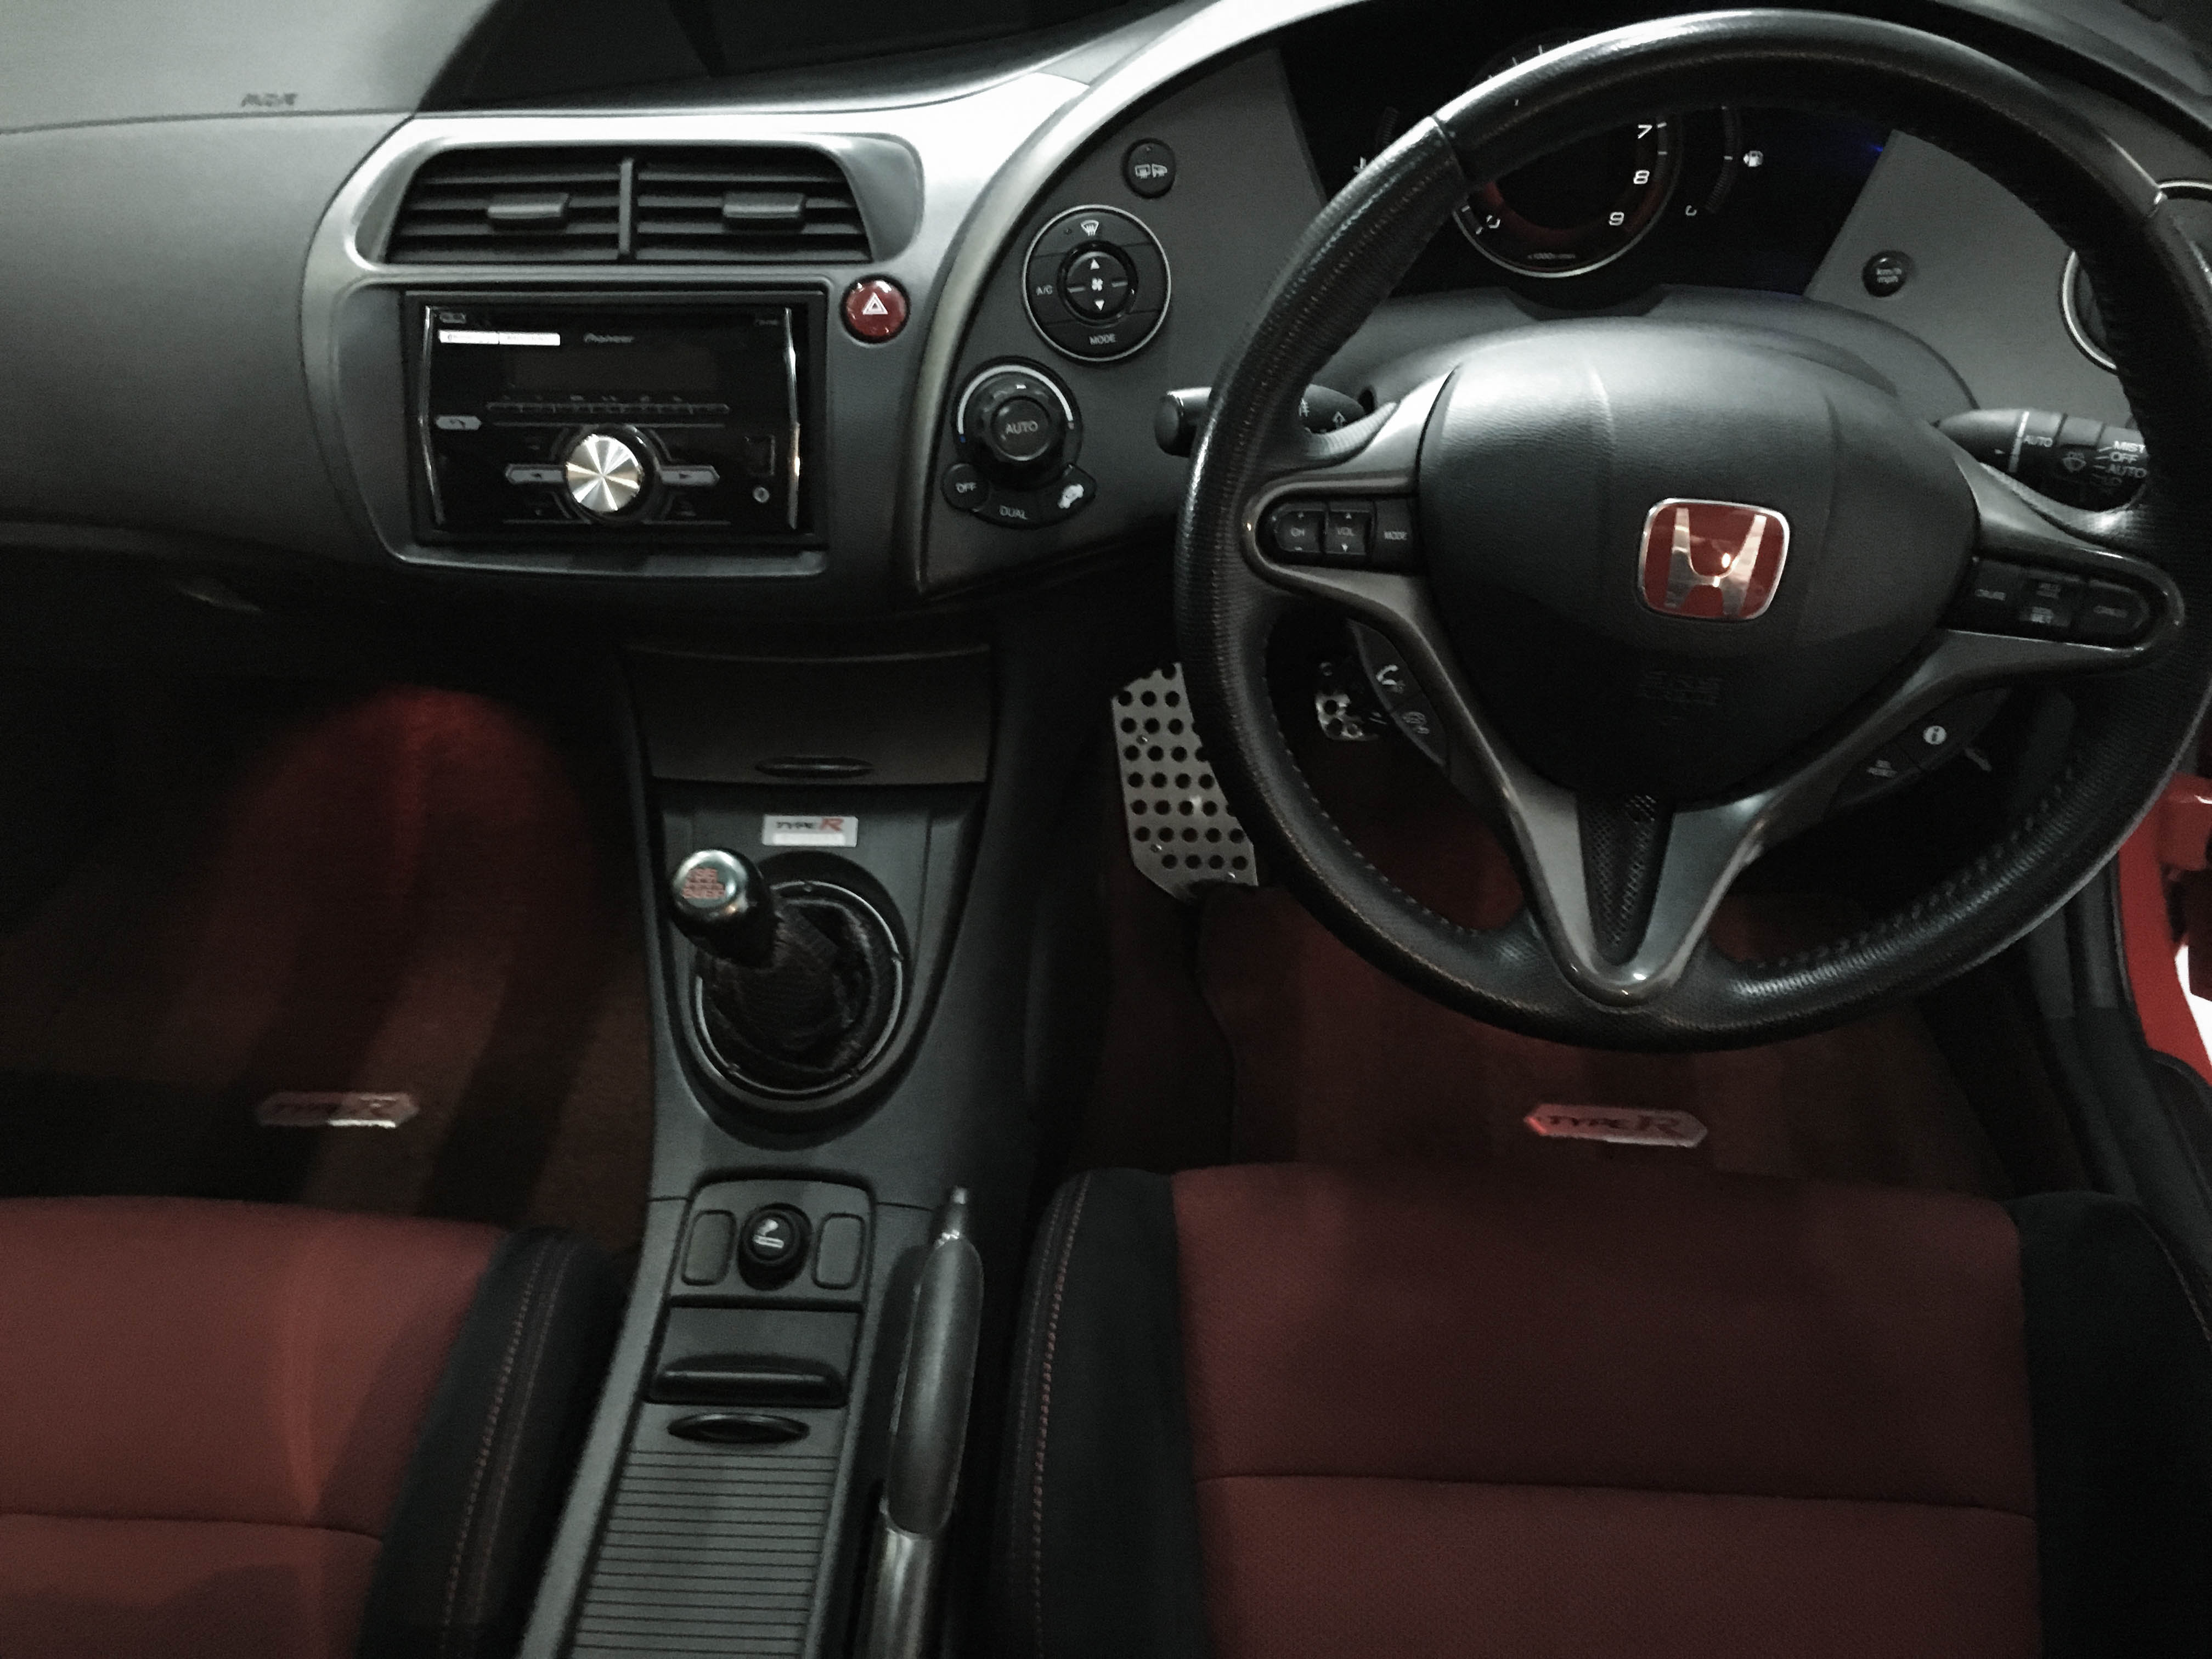 Honda Civic TypeR – Interior